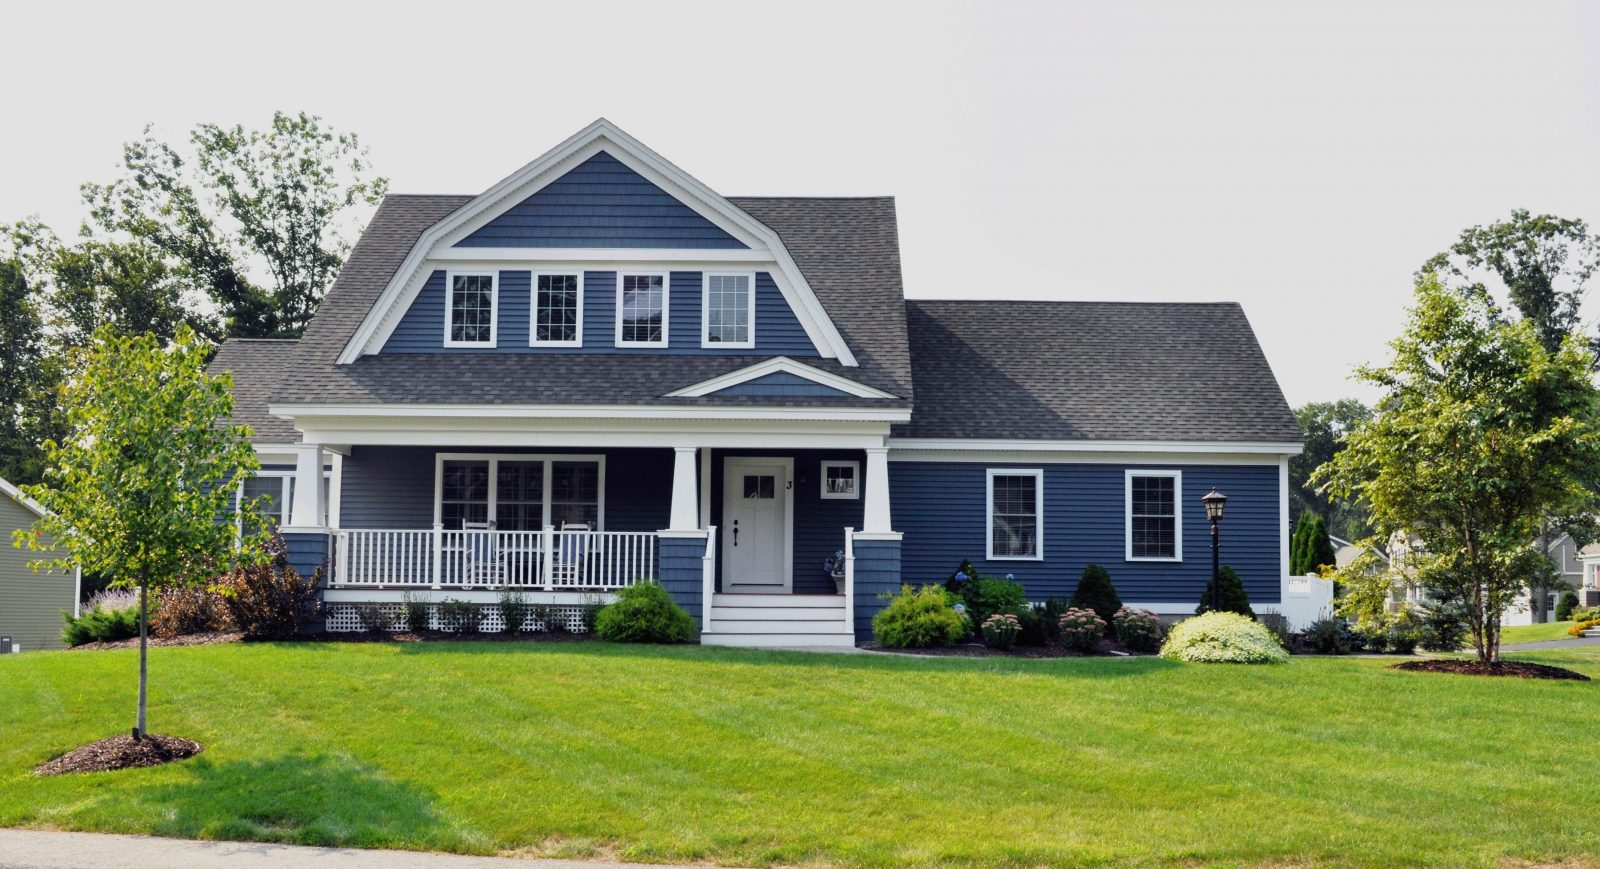 Garland woods pelham nh green company real estate for Craftsman style homes for sale in nh